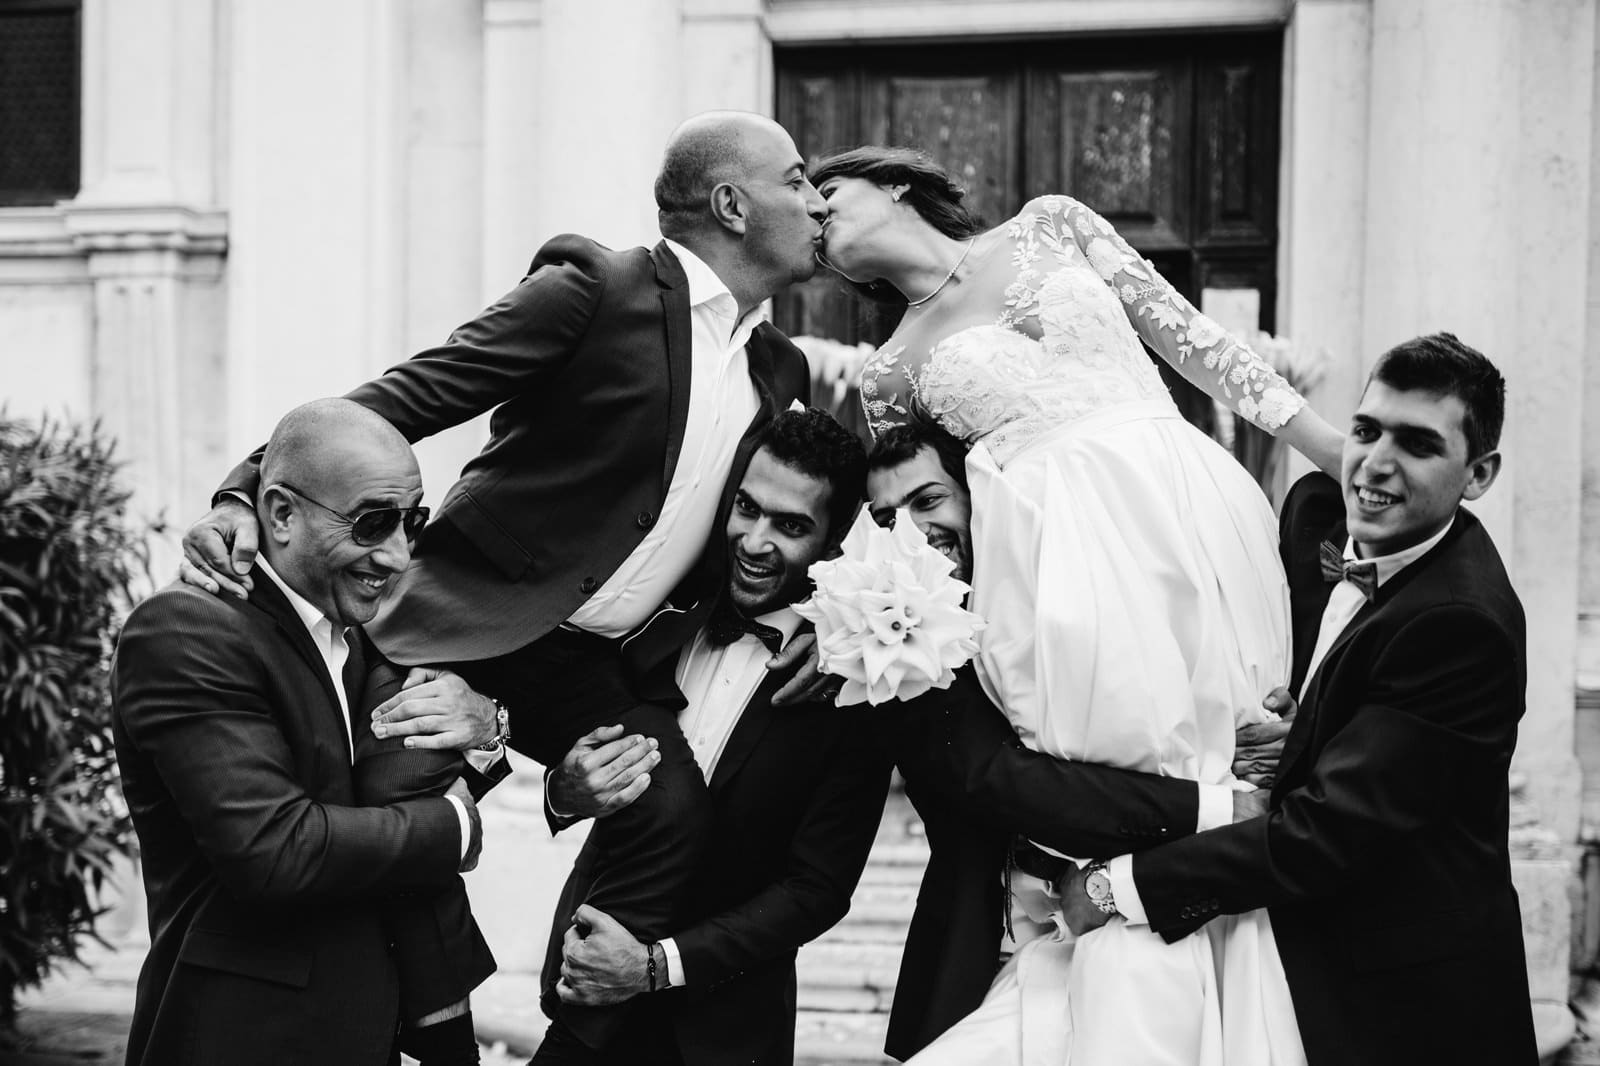 Wedding Photography Styles | Finding Your Style